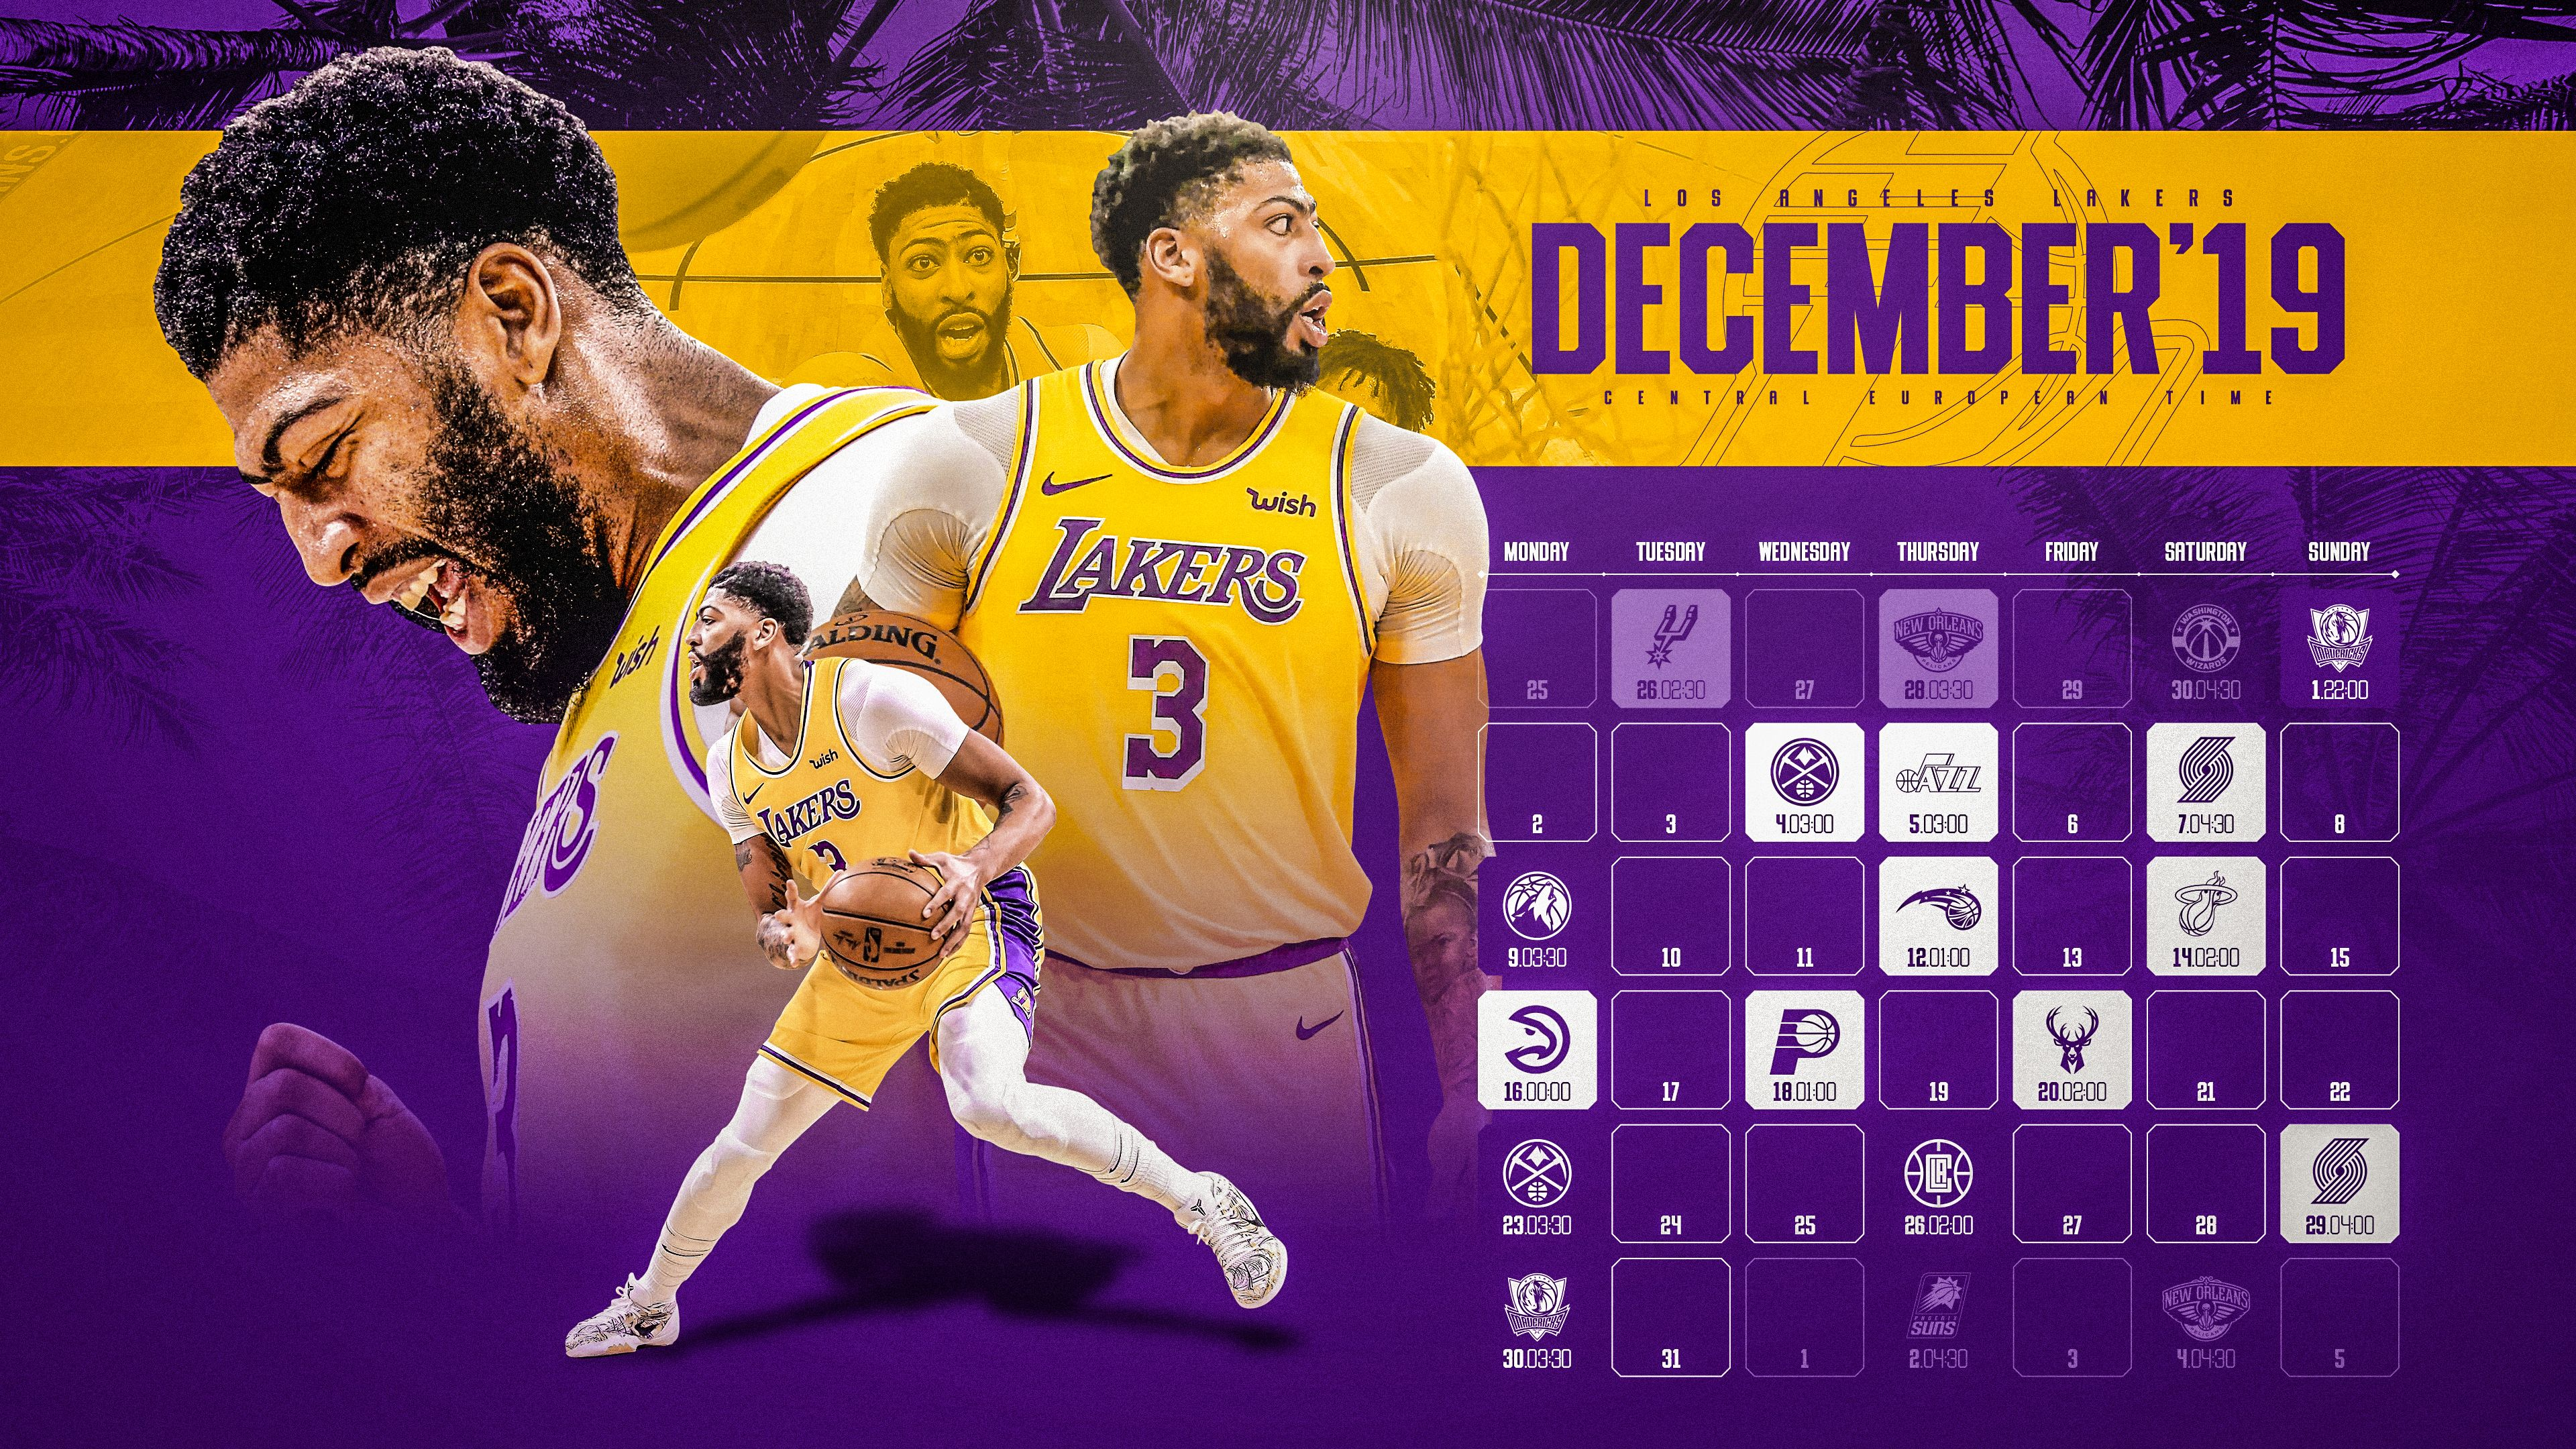 Schedule Wallpaper For The Los Angeles Lakers Regular Season 2019 20 Game Times Are Cet Made By Gergo Tobler Nba Schedule Schedule Design Los Angeles Lakers